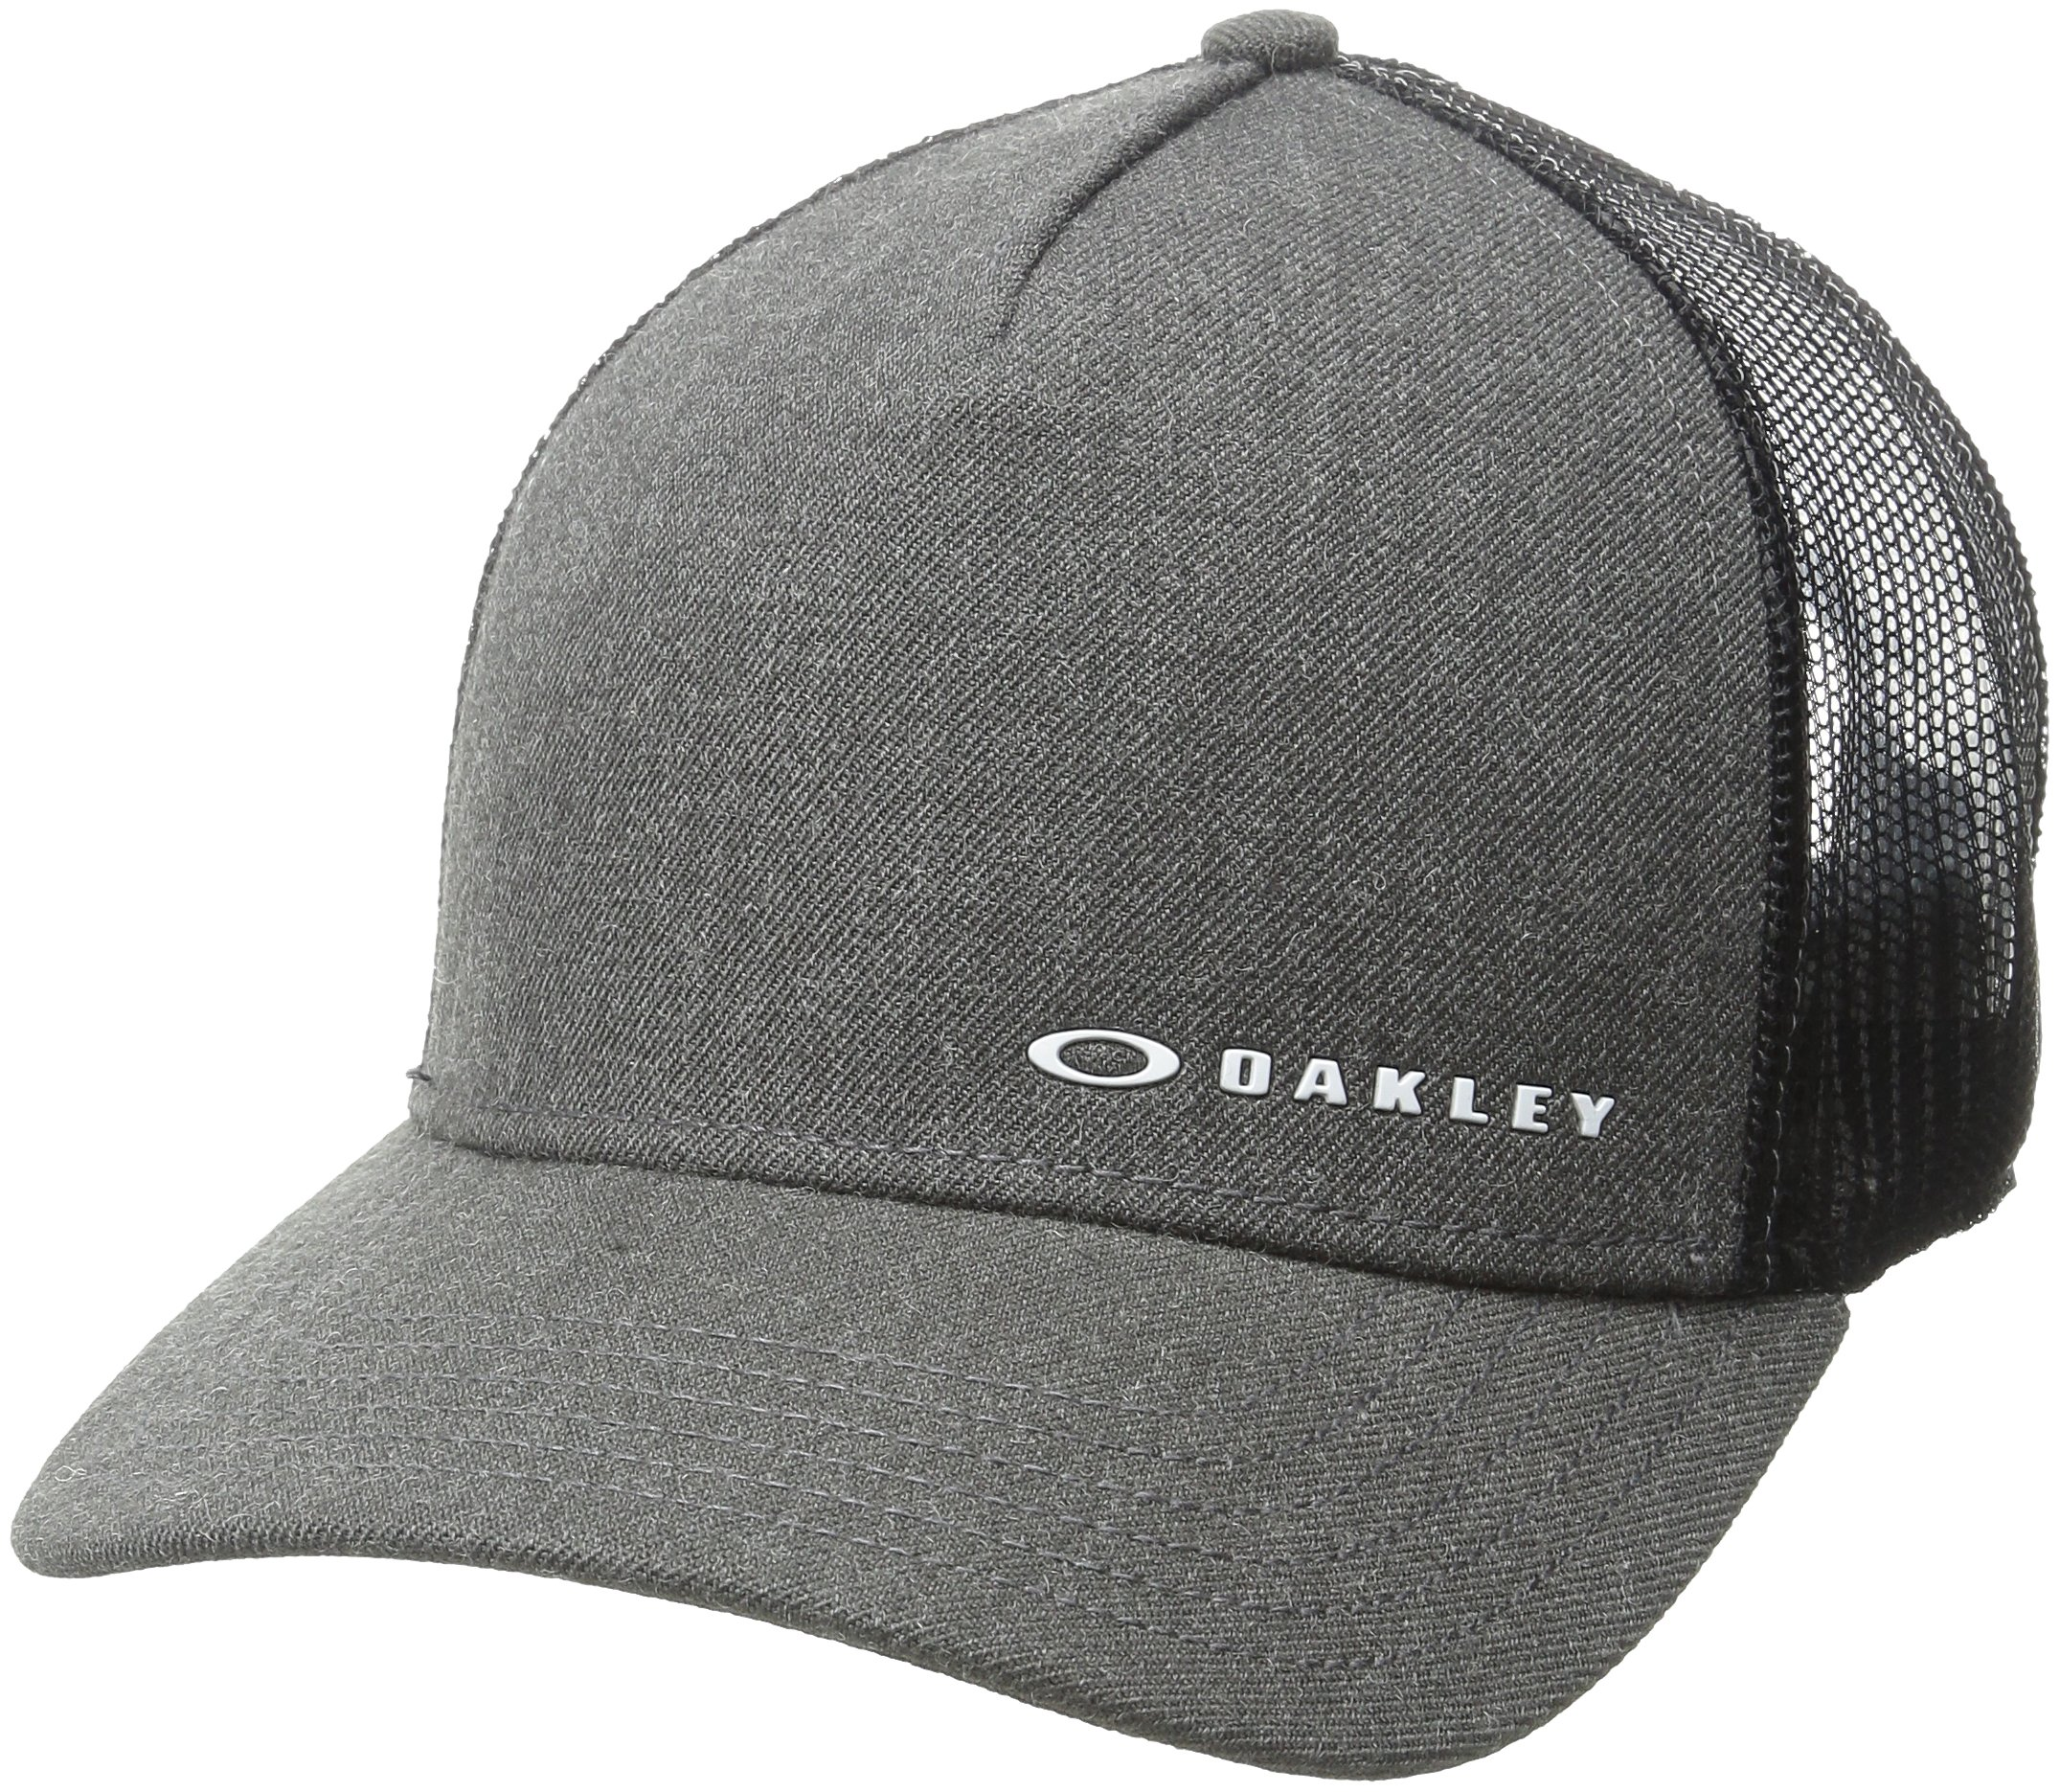 Oakley Men's Chalten Cap, Jet Black, One Size